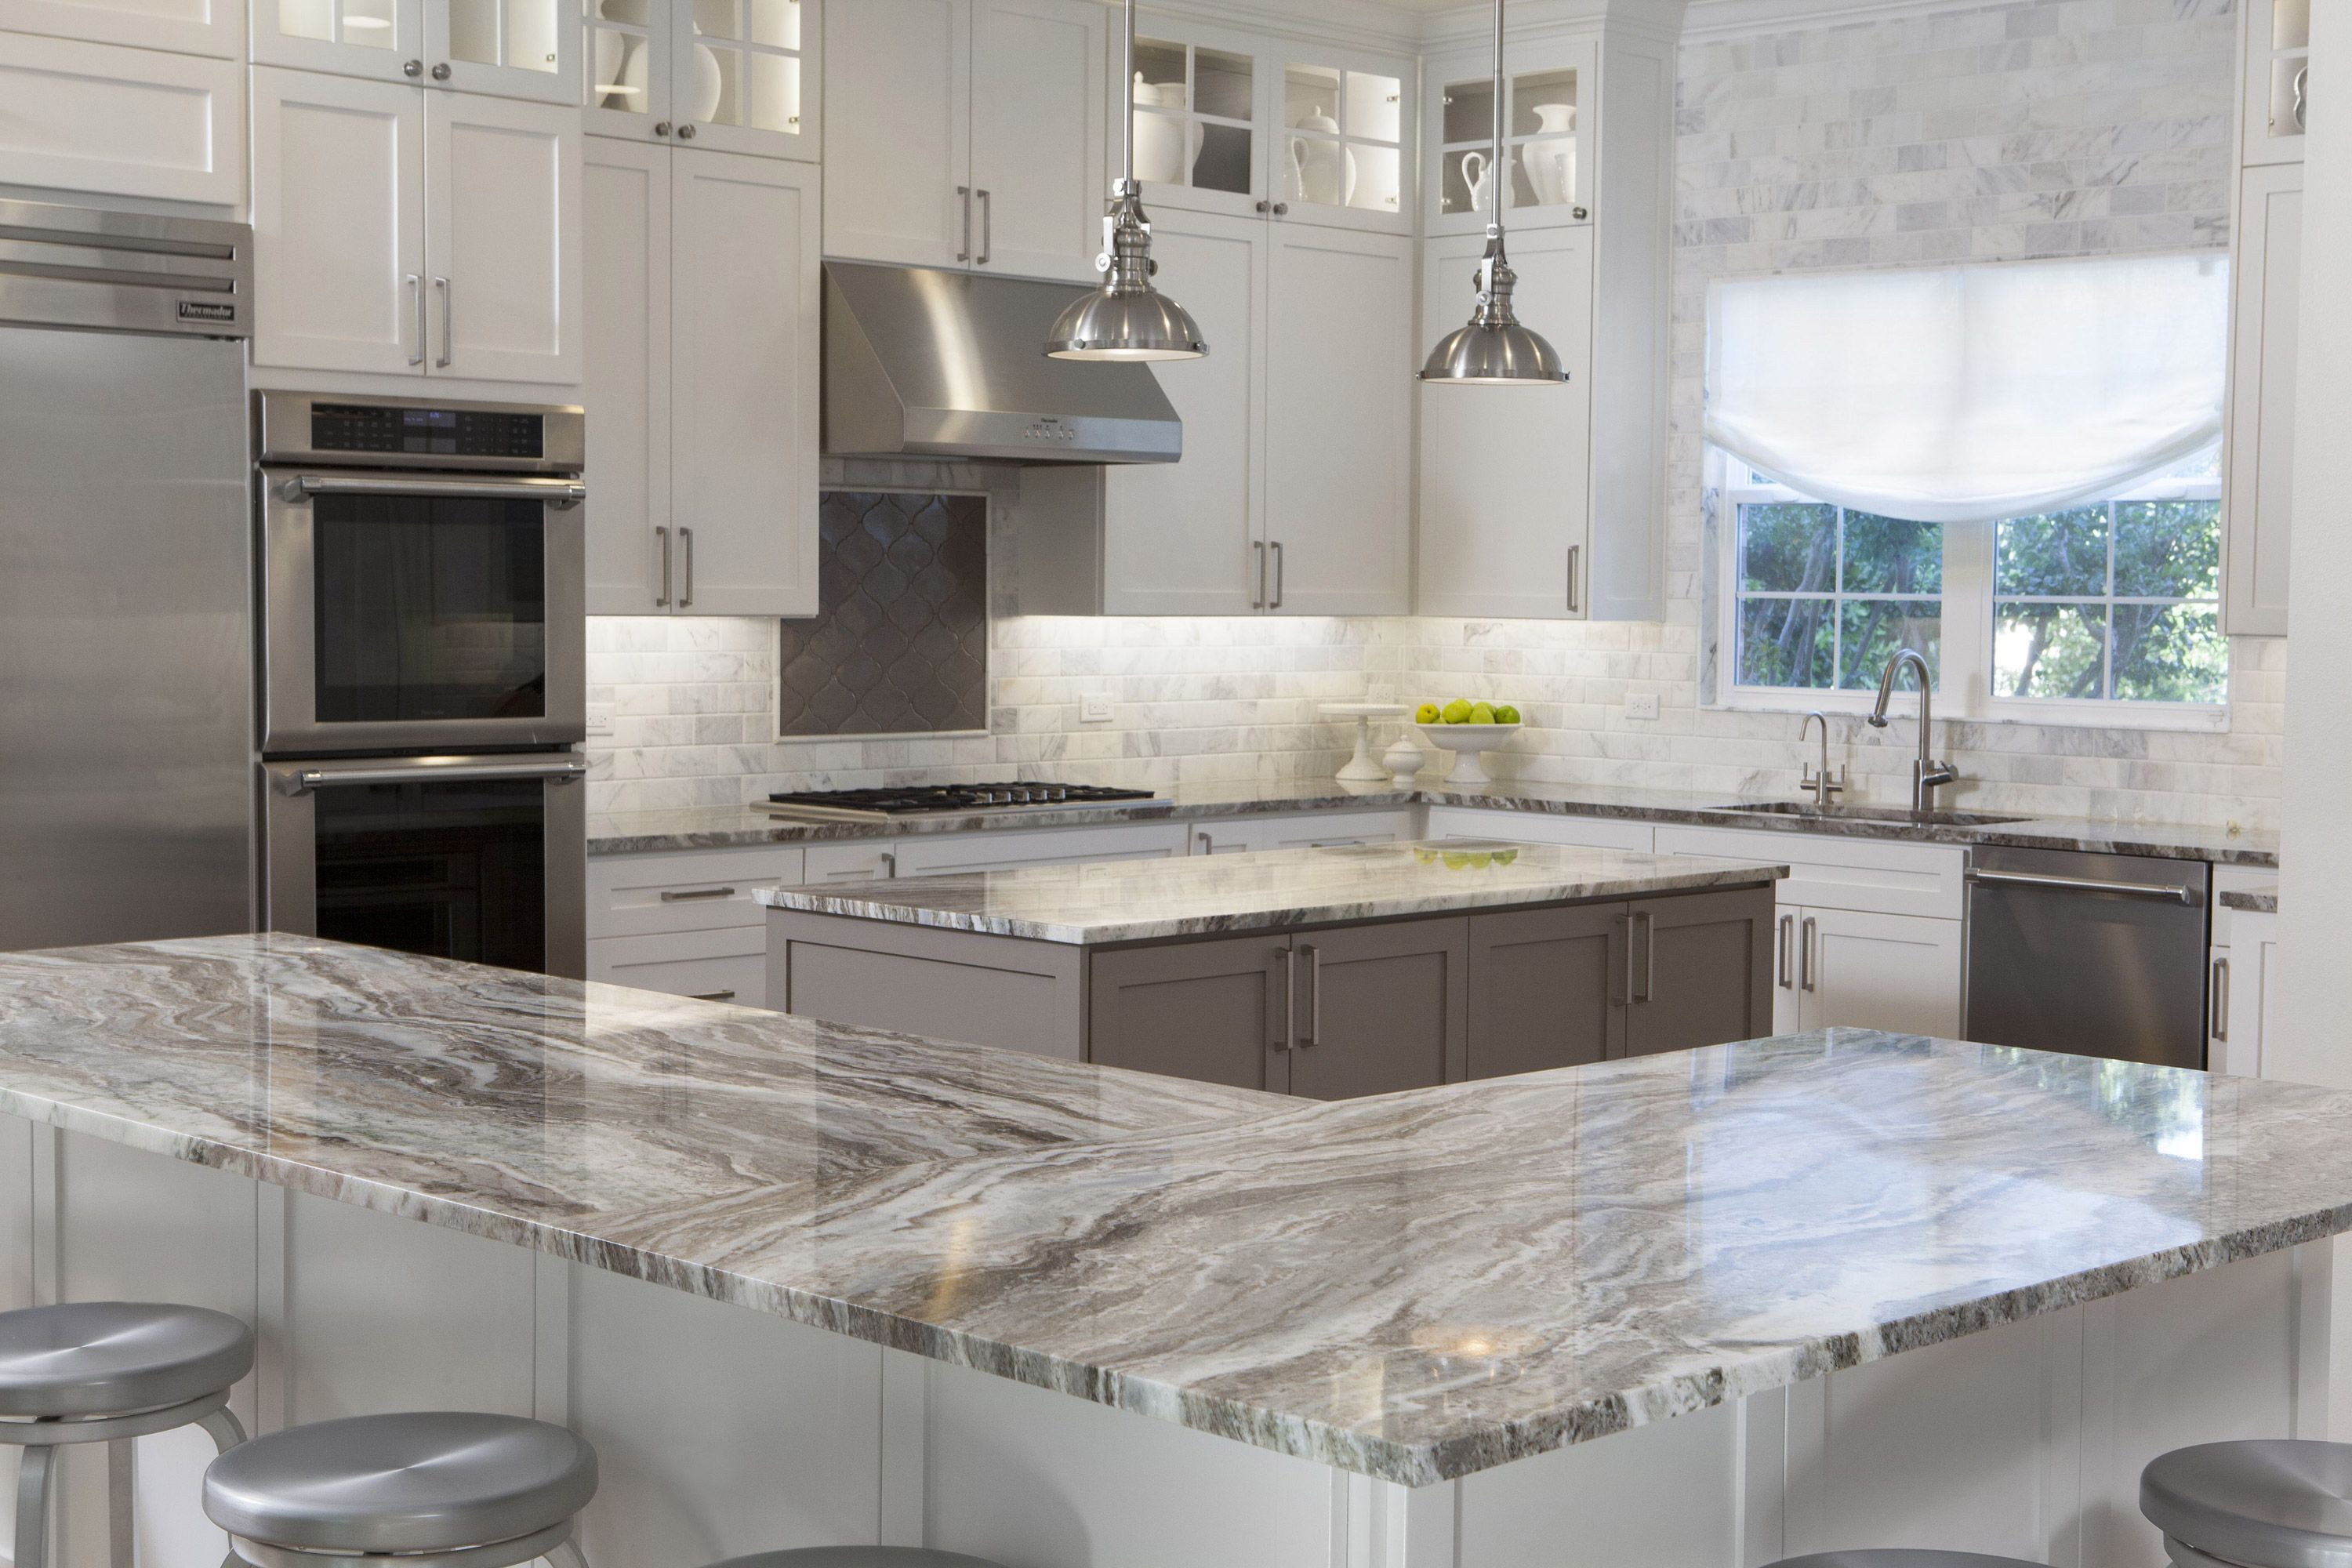 Gorgeous Sequoia Marble Countertops By Artisan Group Sequioa Is A Marble But A Very Hard Marbl Marble Countertops Kitchen Marbel Kitchen Kitchen Countertops